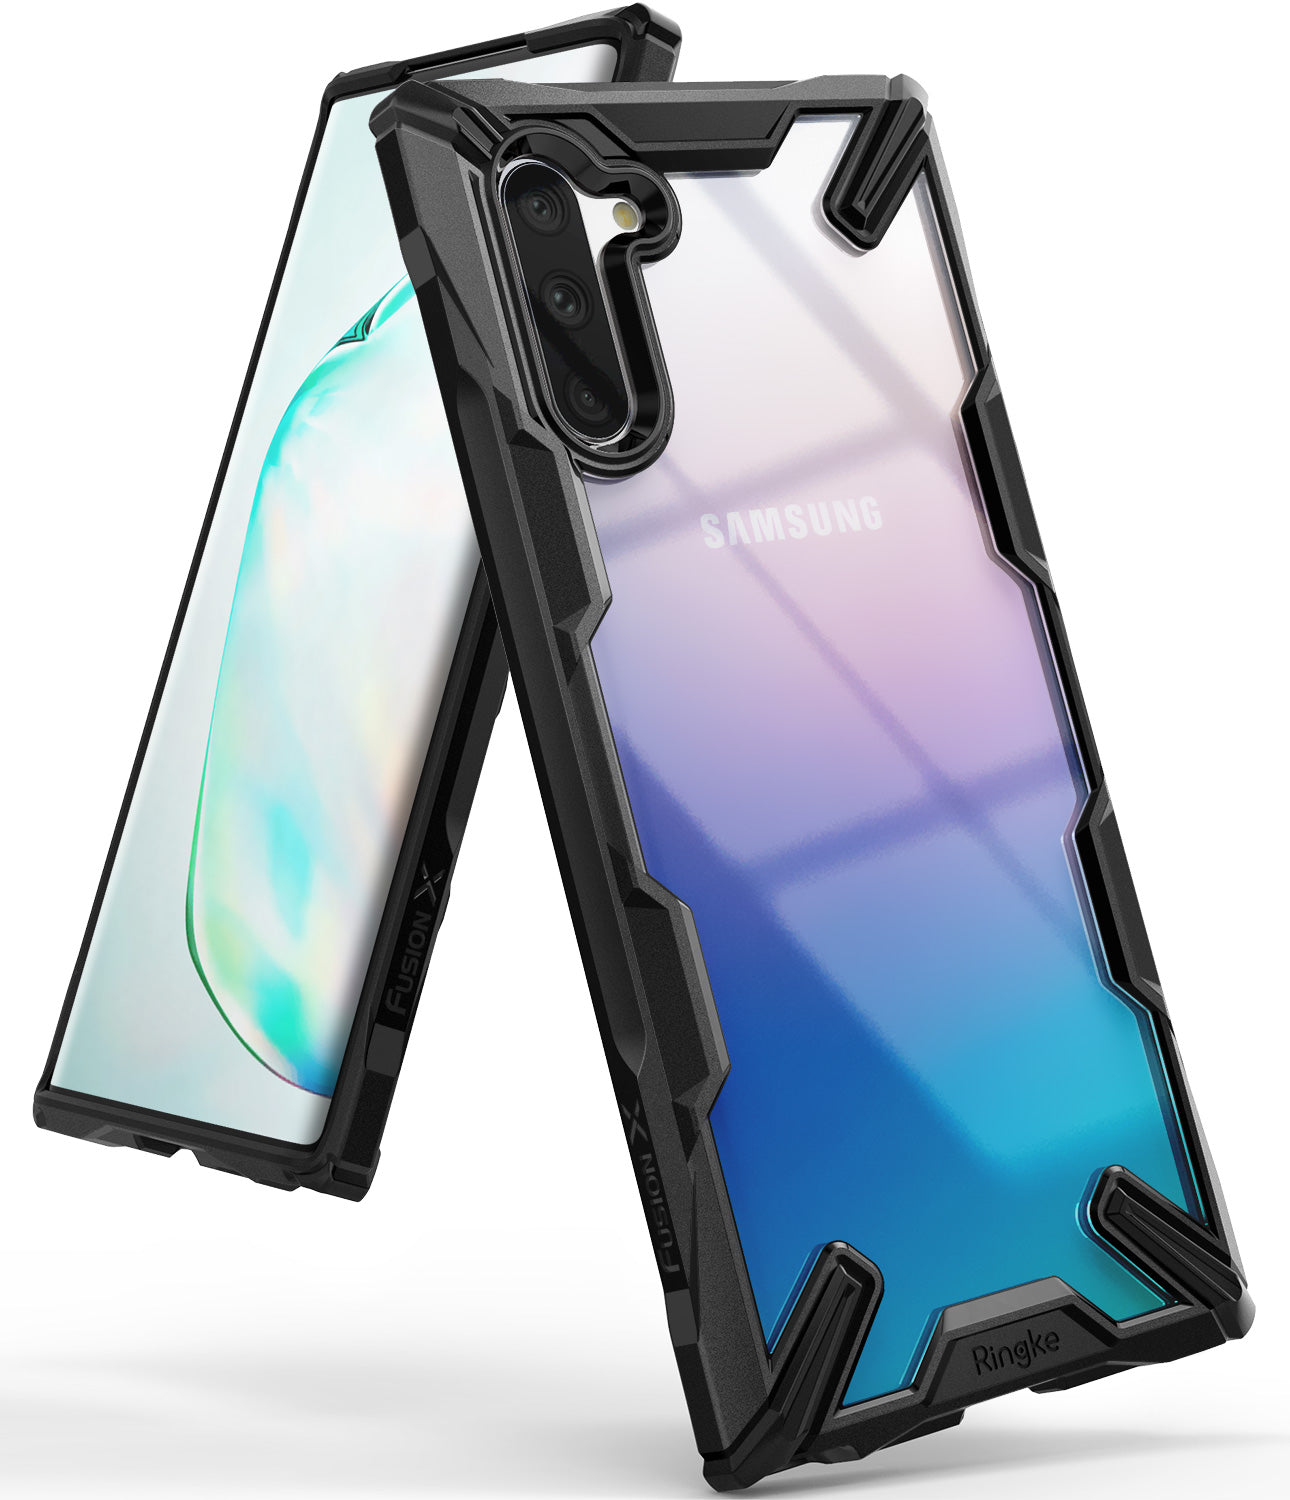 Ringke Fusion-X case for Galaxy Note 10 5G (2019) Black